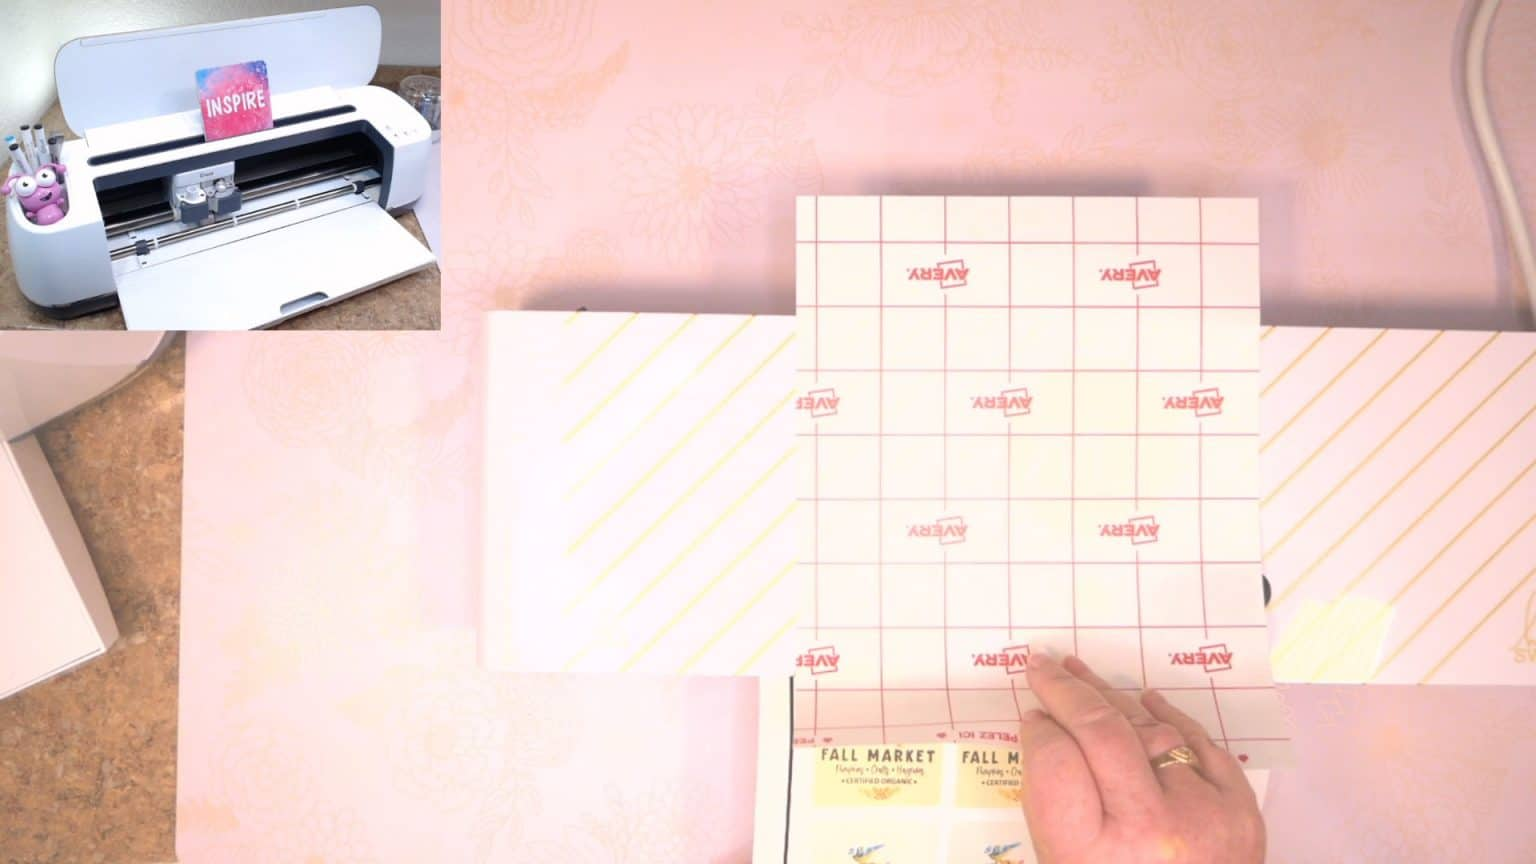 hold both the sticker sheet and the laminated sheet and carefully place end in the laminator